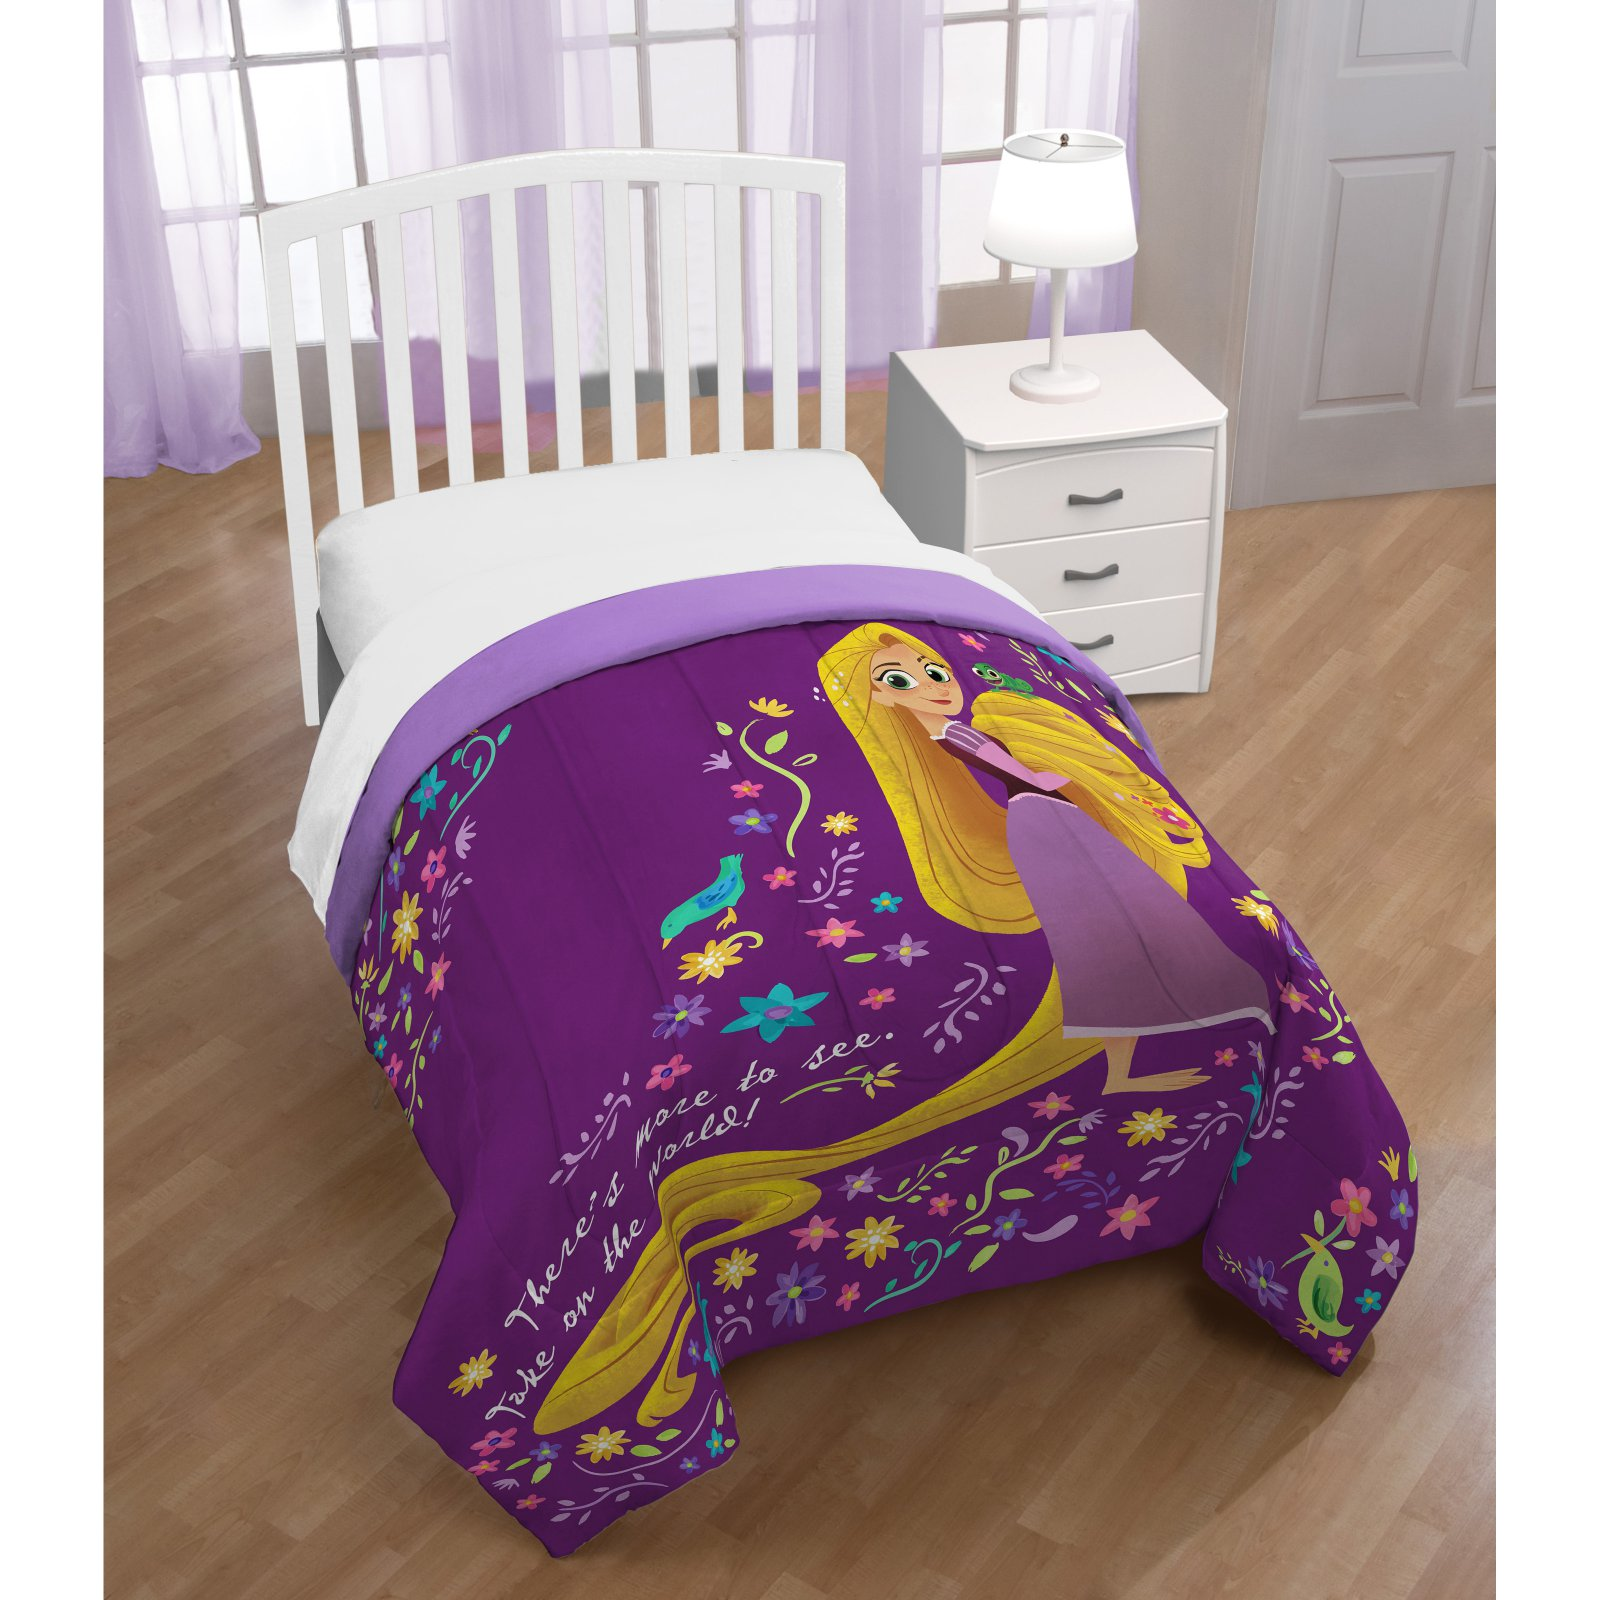 Tangled There Is More Reversible Comforter by Disney